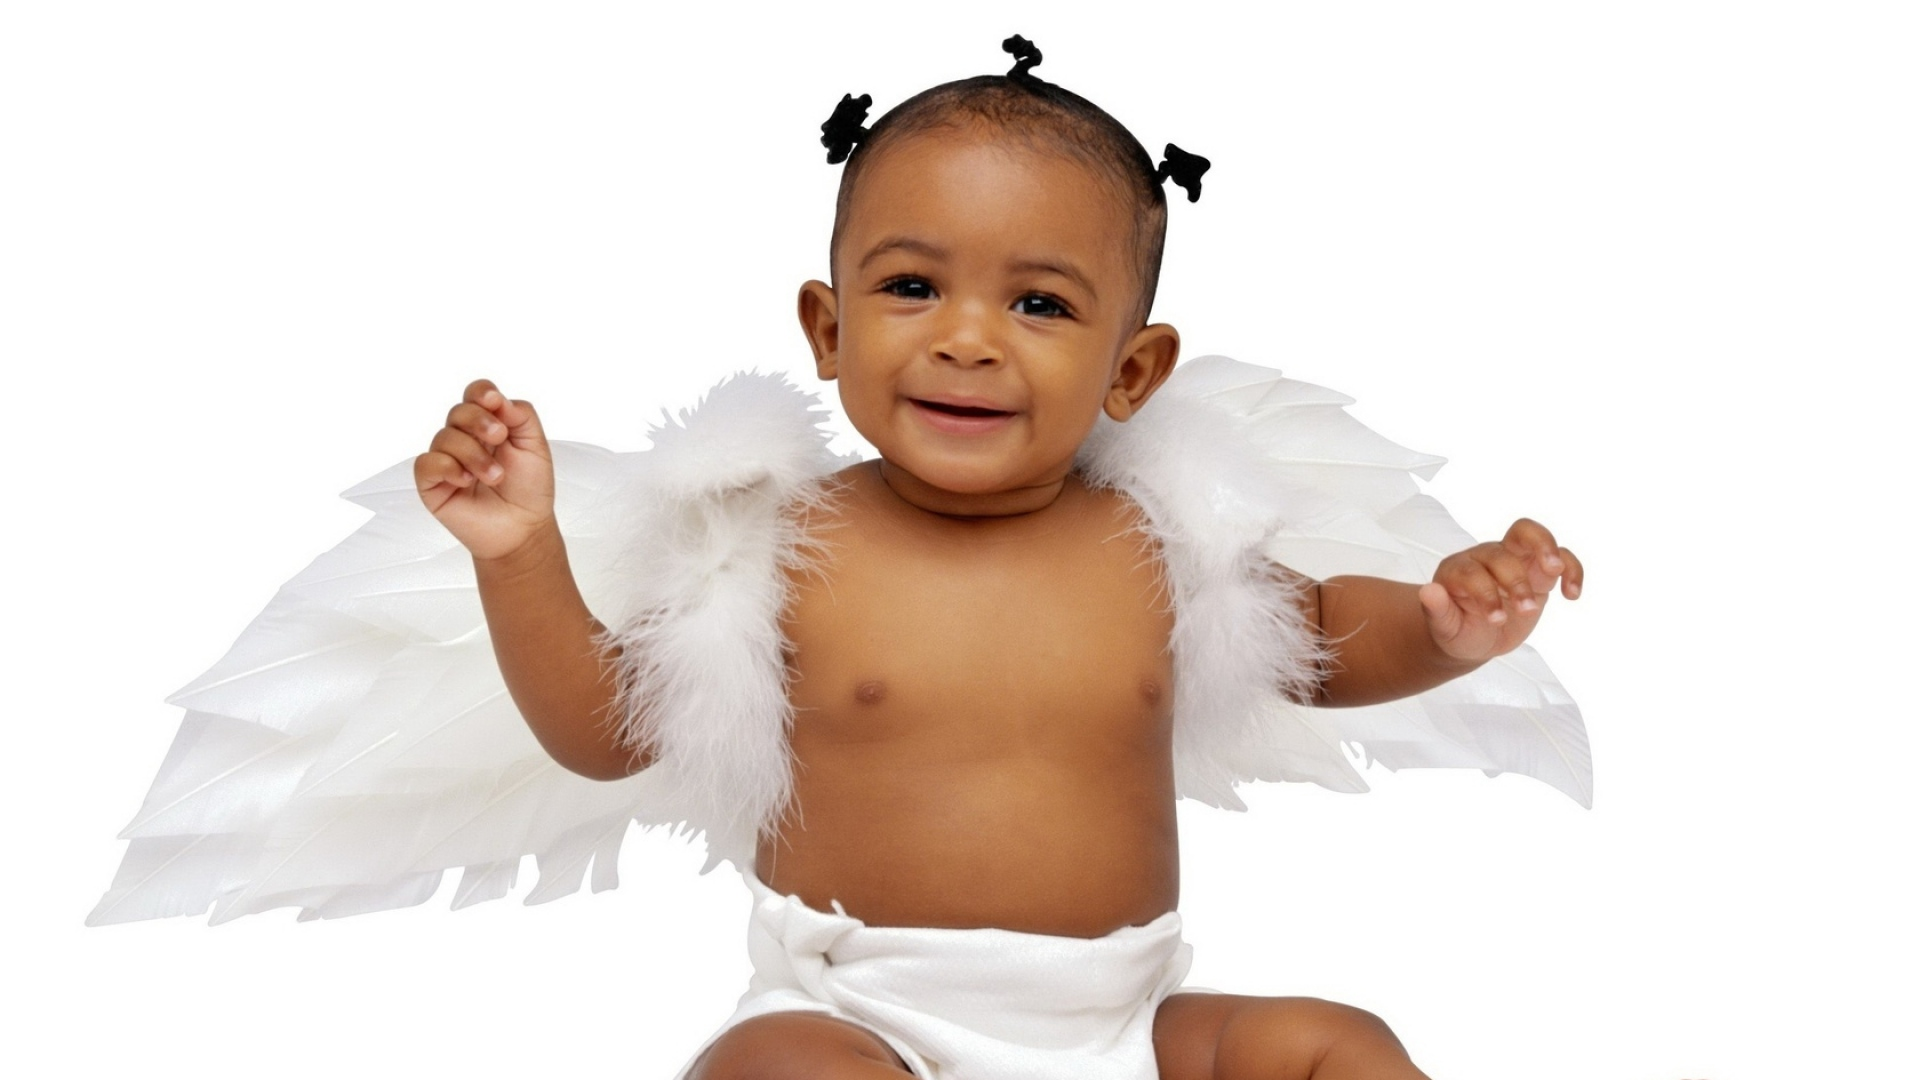 Download Wallpaper 1920x1080 Child Angel Wings Baby Full Hd 1080p Hd Background